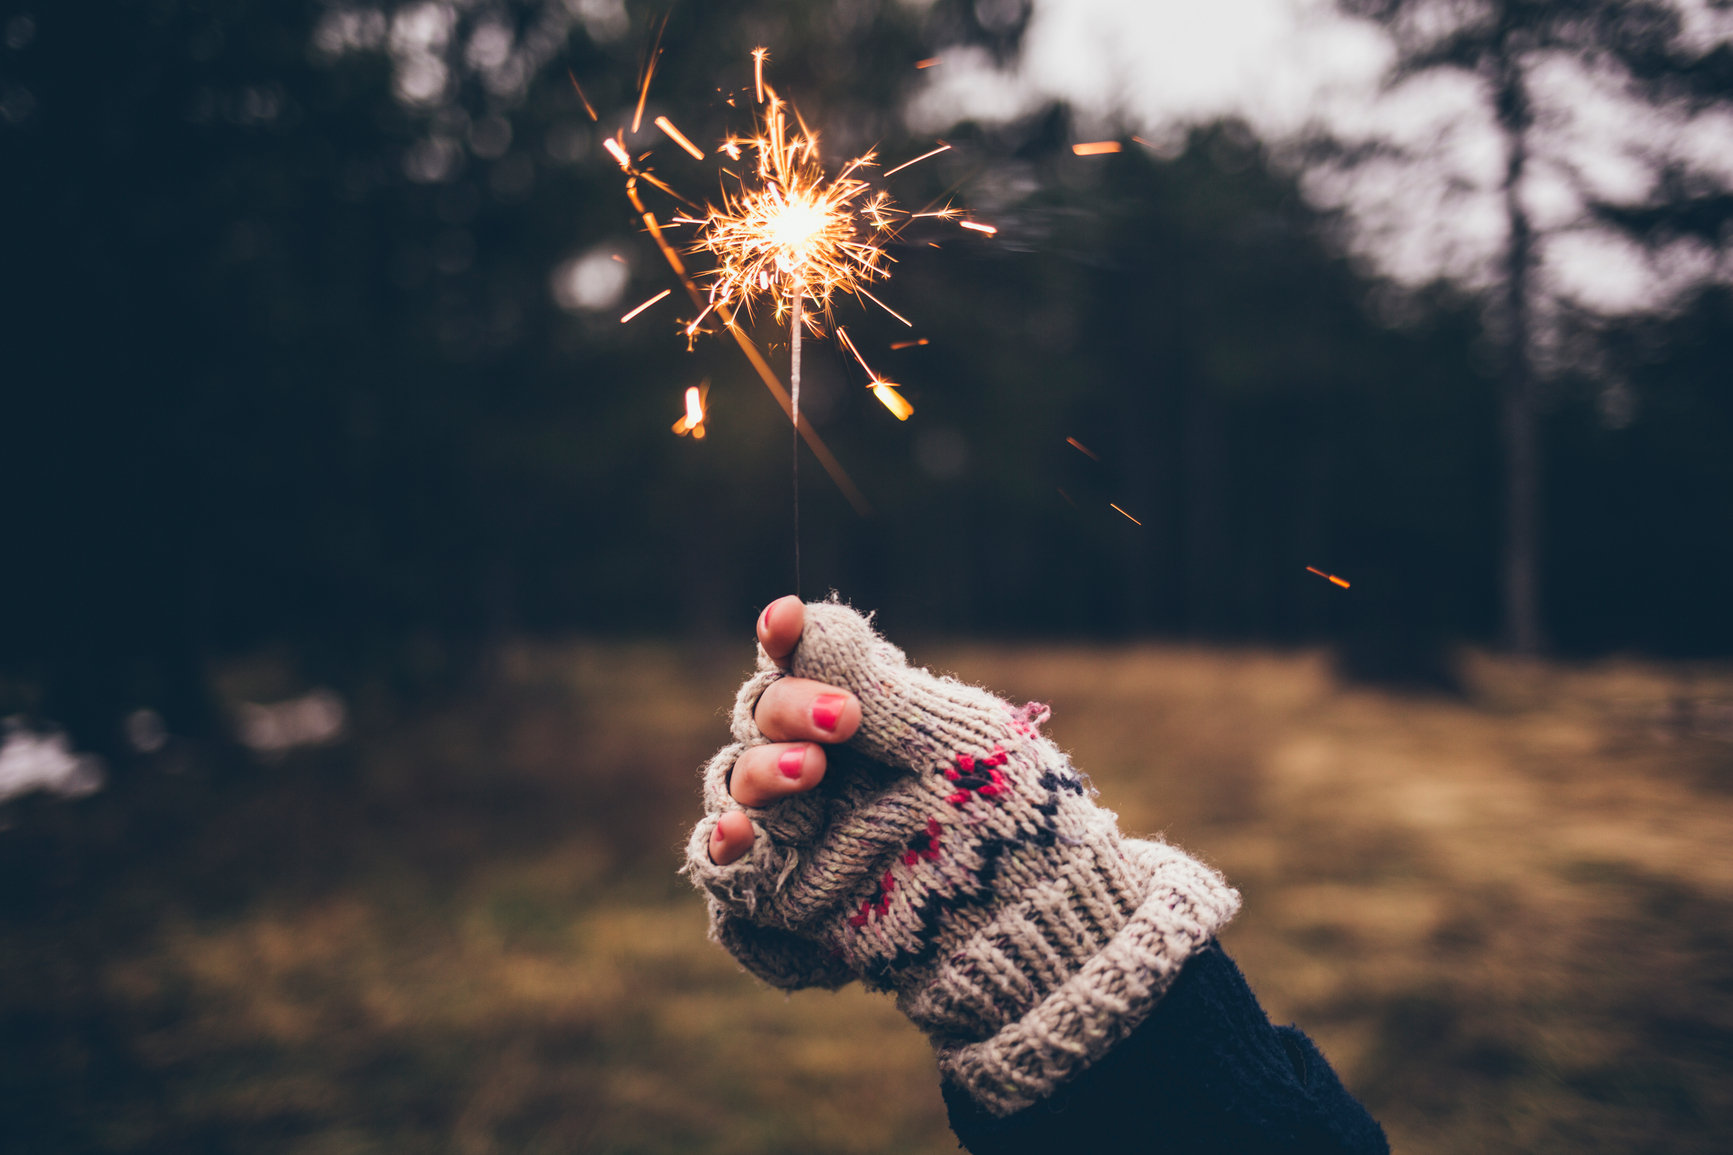 Woman holding a sparkler on a cold winter day.